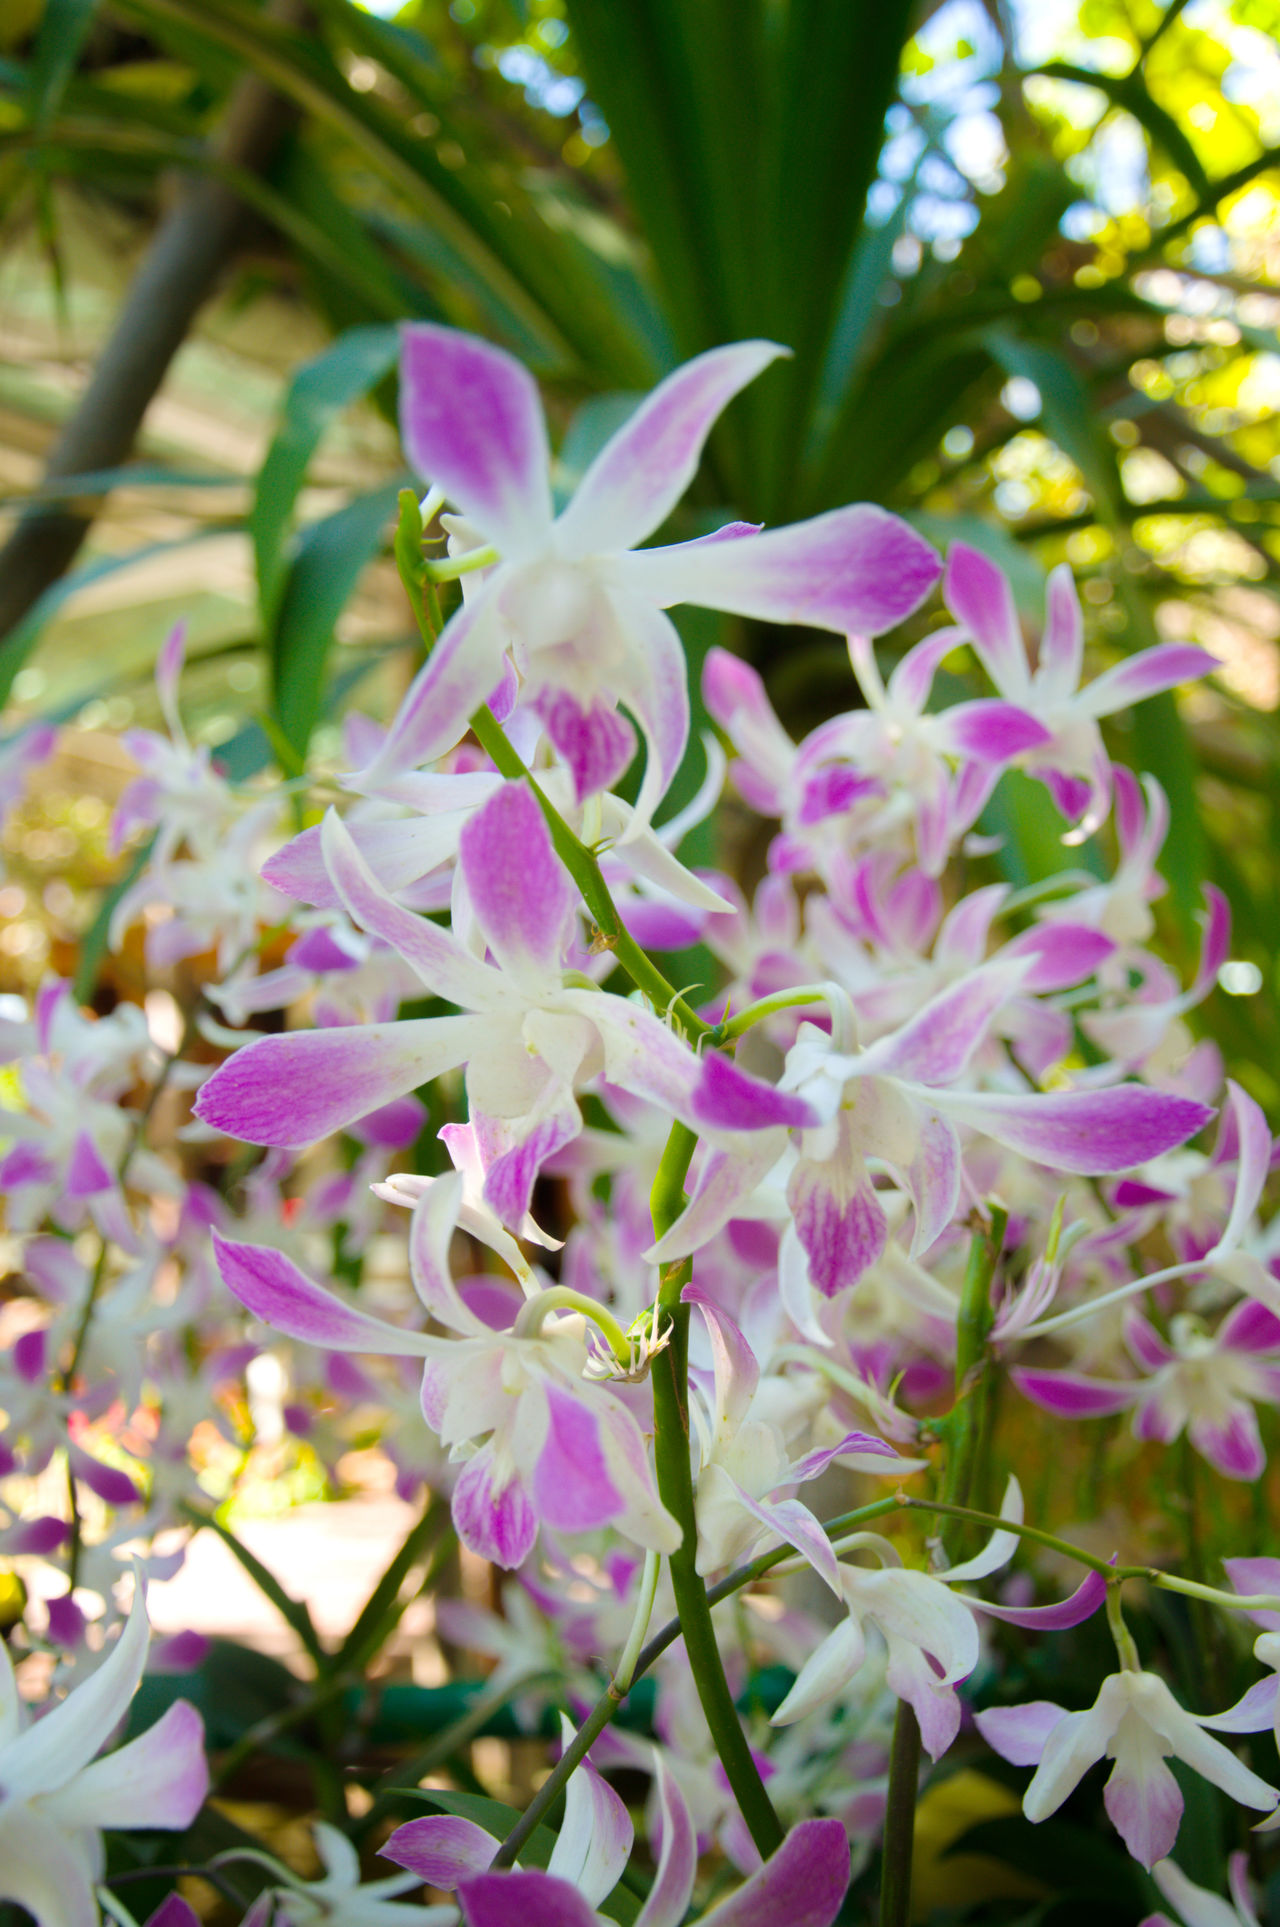 Dendrobium orchids Beauty In Nature Blooming Blossom Branch Close-up Day Dendrobium Dendrobiumorchid Flower Flower Head Fragility Freshness Growth Nature No People Orchid Orchid Blossoms Outdoors Petal Plant Purple